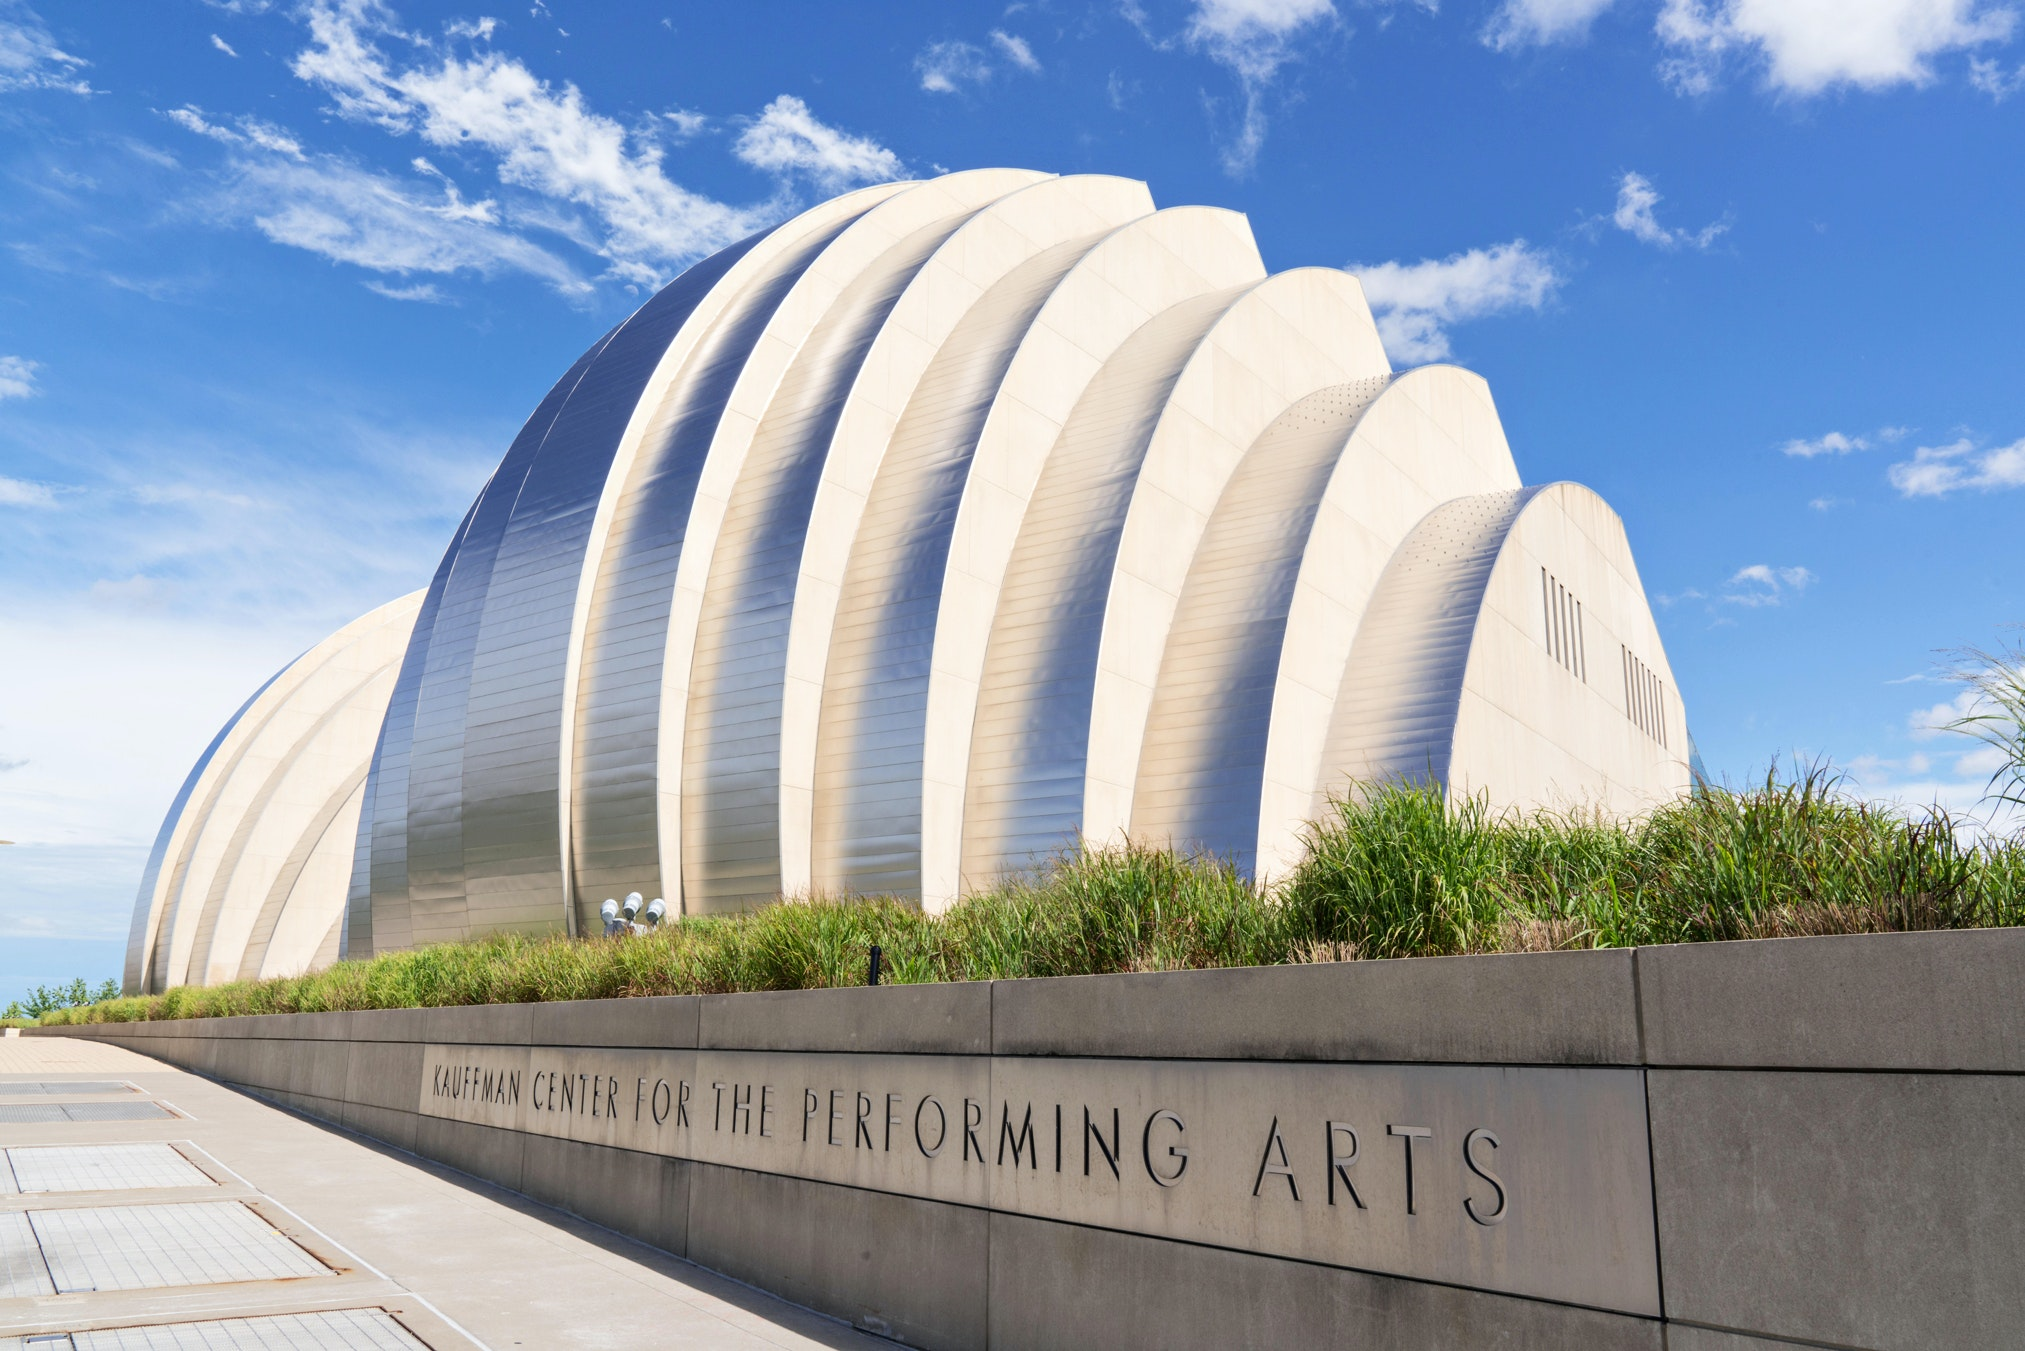 Kauffman Center for the Performing Arts was named one of the world's most beautiful concert halls by the German building data company Emporis.